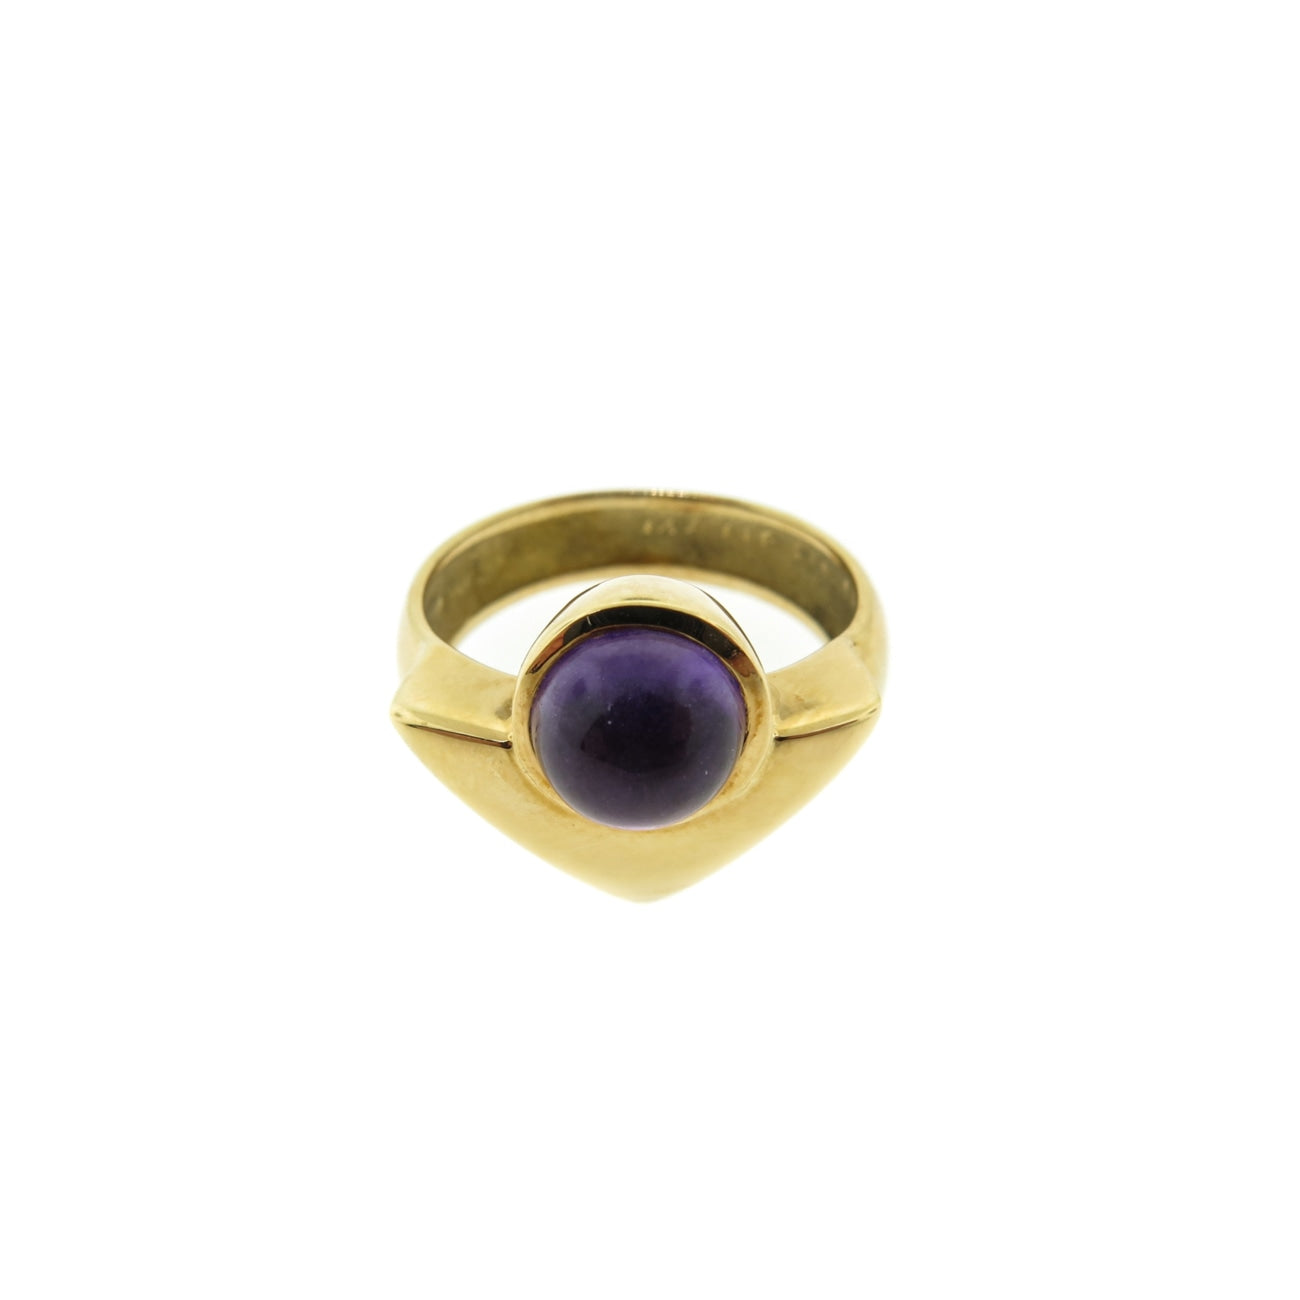 Manfredi Jewelry - 18k Rose Gold Cabochon Amethyst Ring | Manfredi Jewels